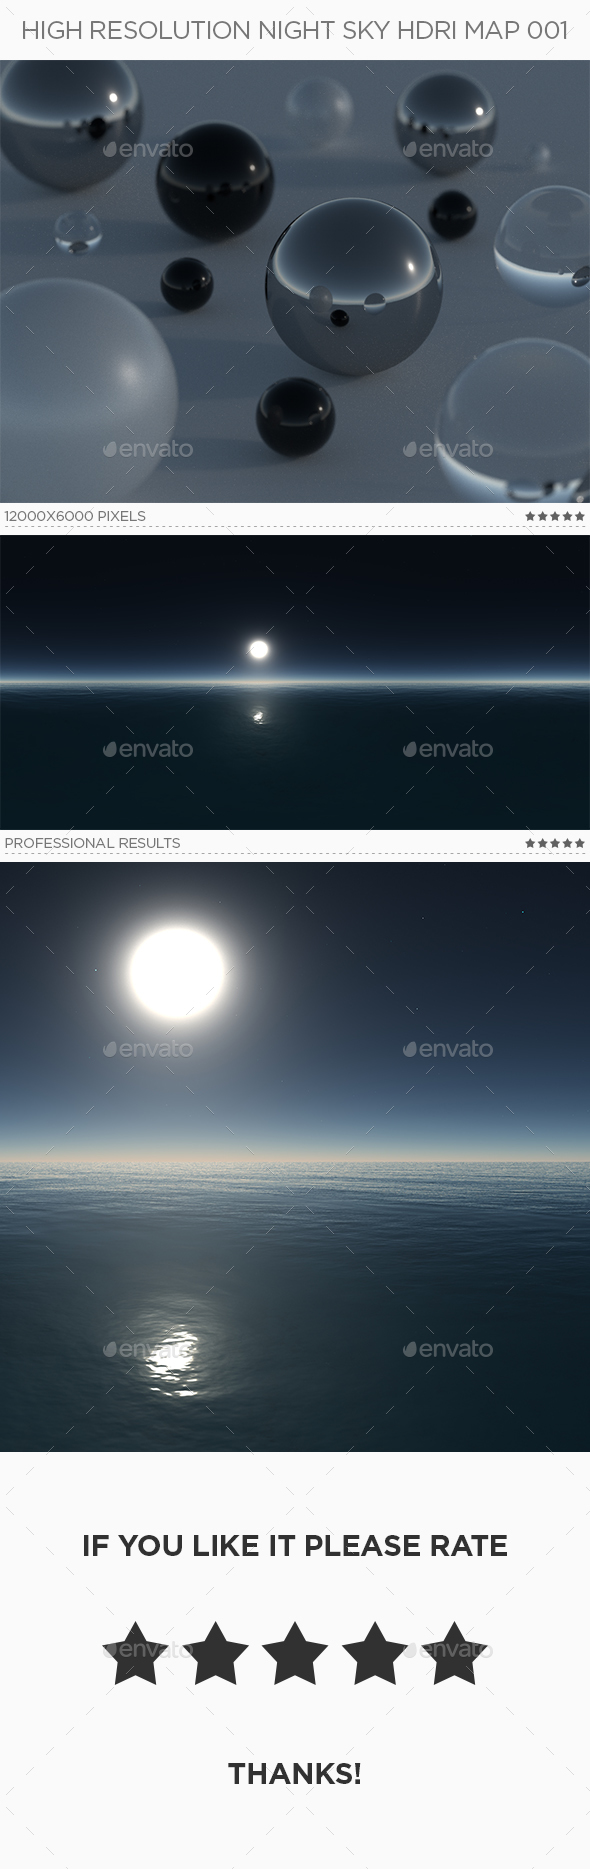 High Resolution Night Sky HDRi Map 001 - 3DOcean Item for Sale